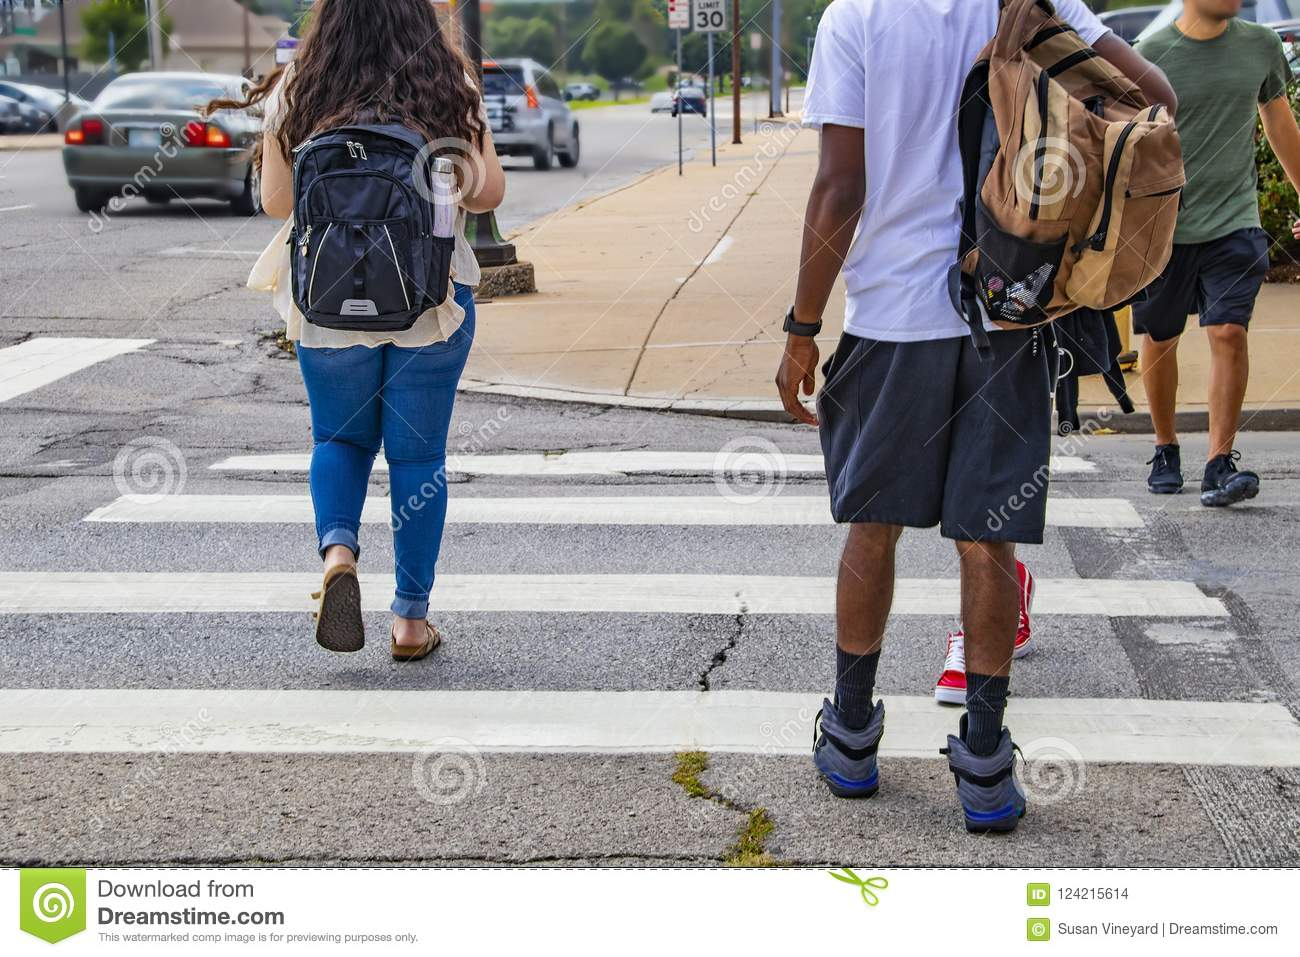 Back to school - the backs of college students crossing urban crosswalk with backpacks - ethnic diversity and casual dress with ca